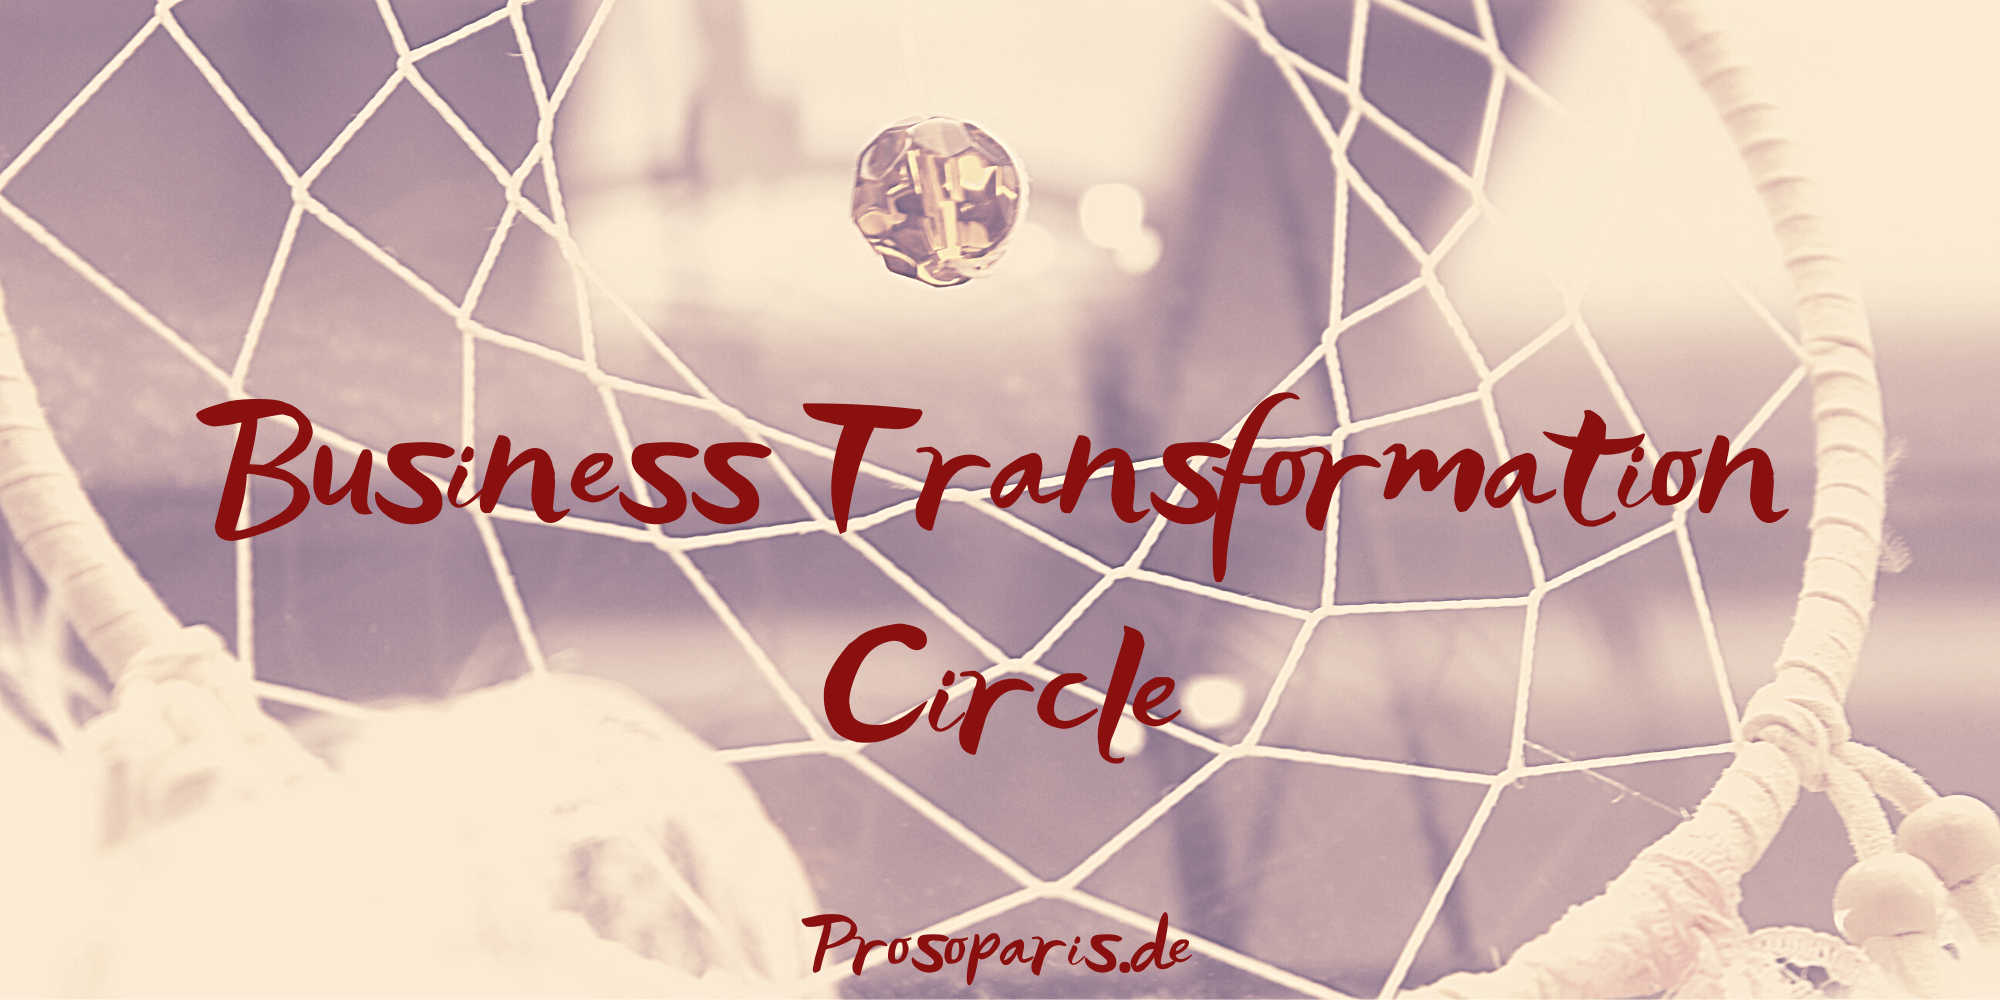 Busieness Transformation Circle, Theorie U, Petra Prosoparis, Wandel, Transformation, Change